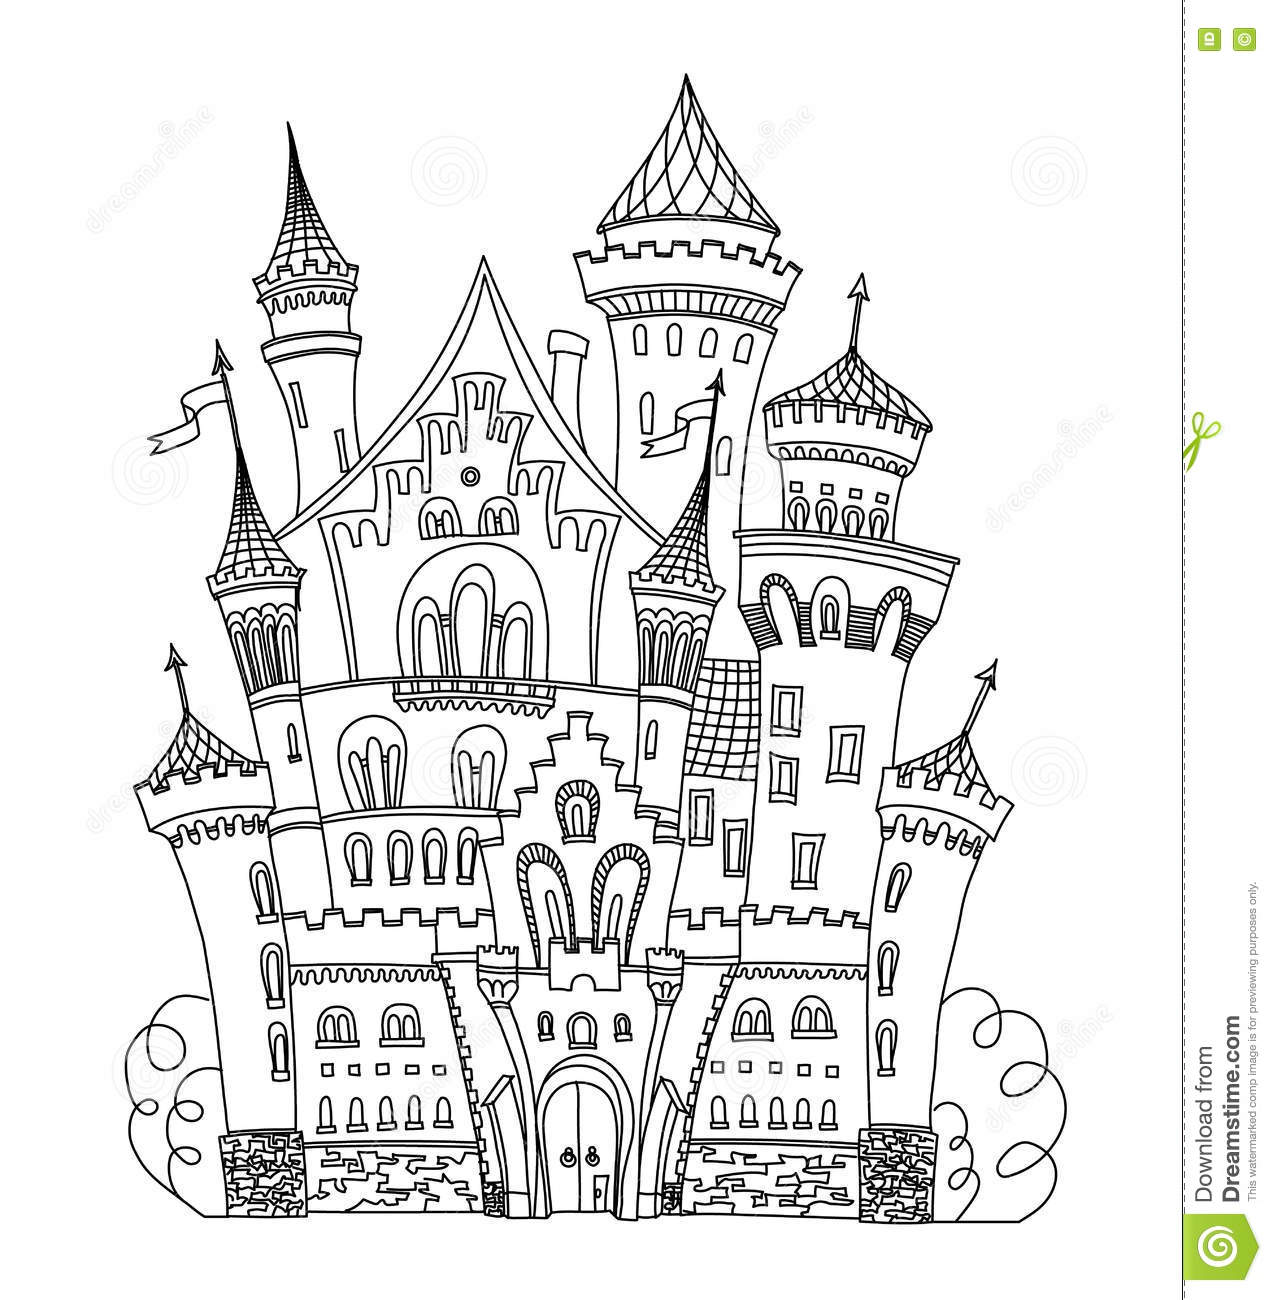 Coloring book landmark for adults - Castle Coloring Book For Adults And Children Vector Illustration Anti Stress Adult Black